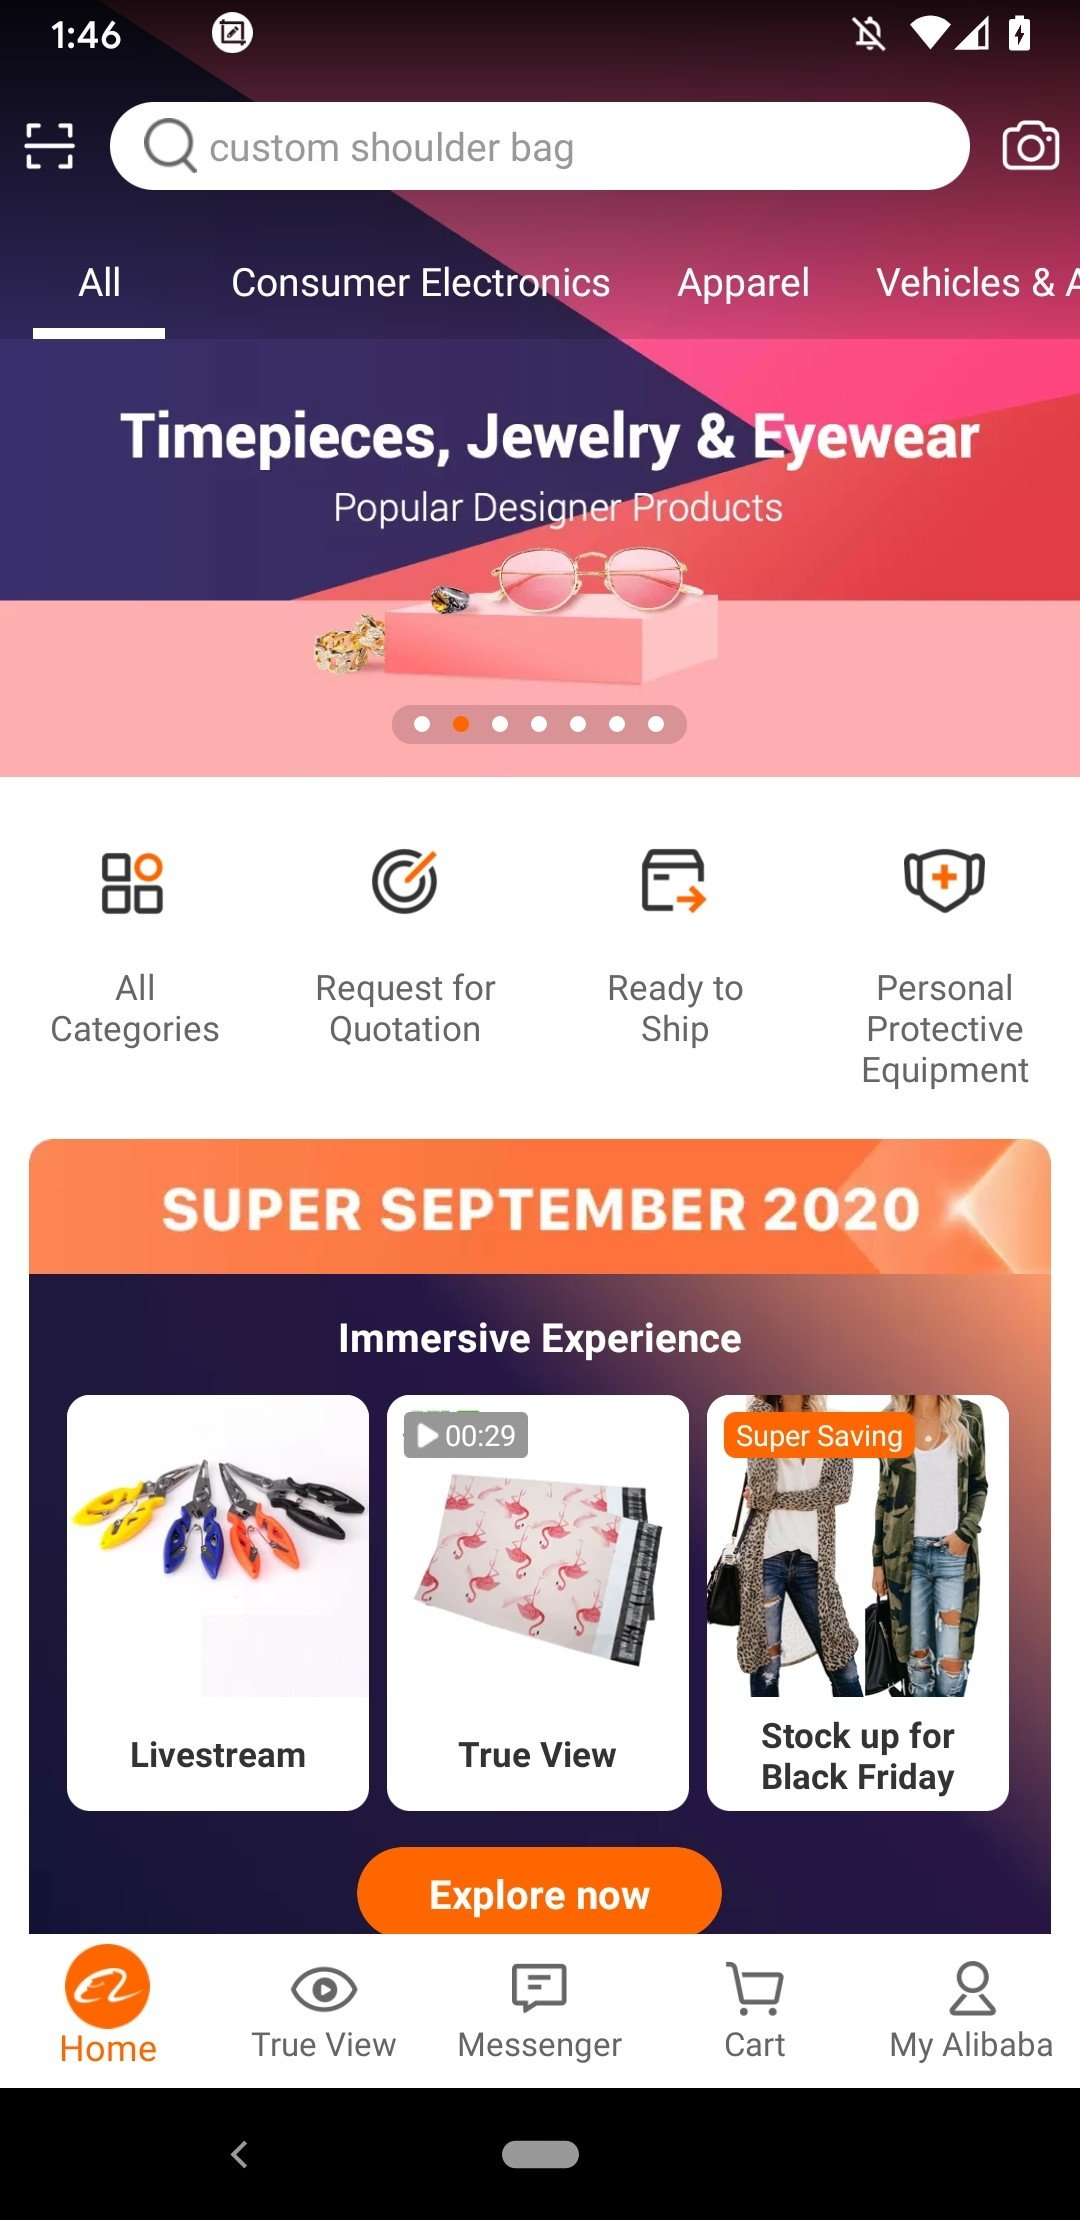 Alibaba App 7 22 0 Download For Android Apk Free They span 40 categories, including machinery, consumer electronics, apparel, and home and garden. alibaba app 7 22 0 download for